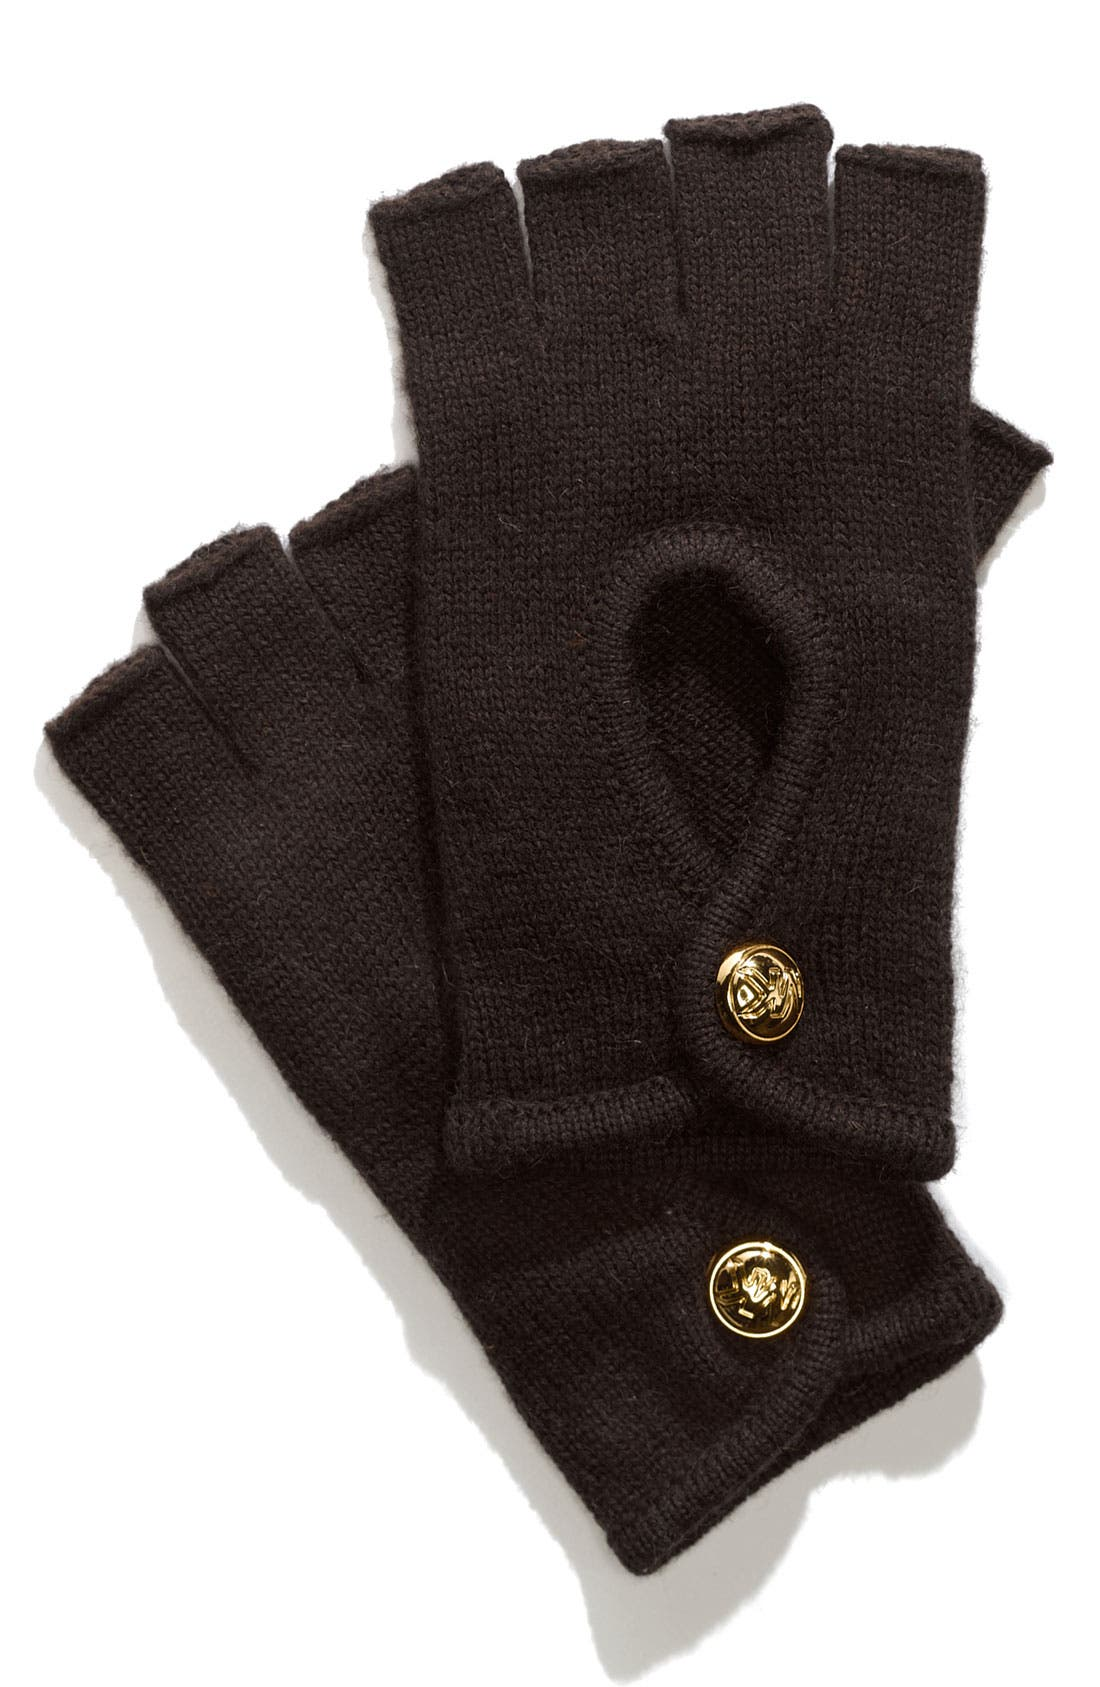 Alternate Image 1 Selected - MICHAEL Michael Kors Fingerless Knit Driving Gloves